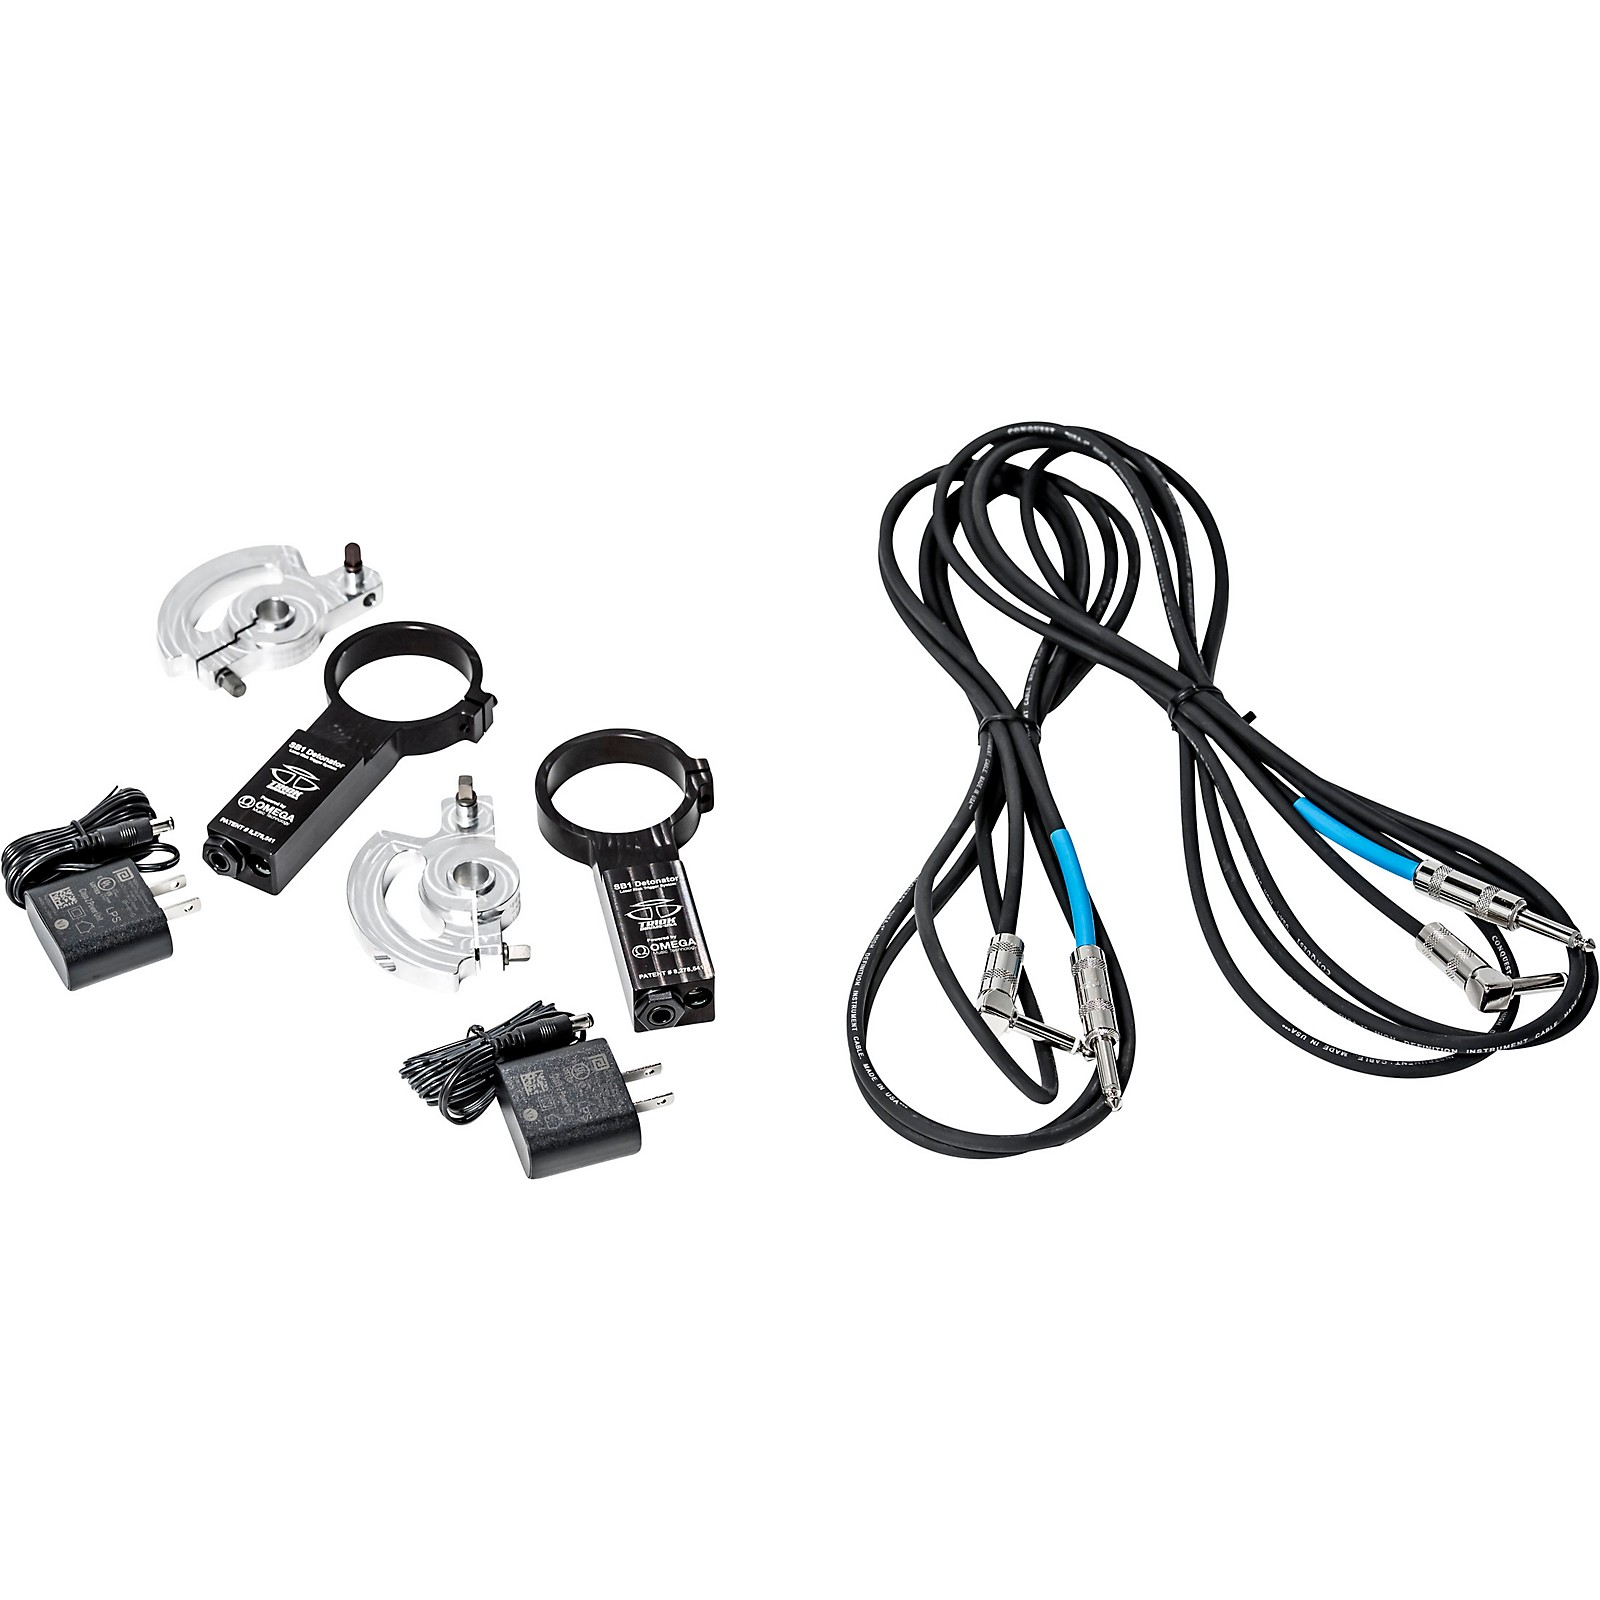 Trick Drums SB1 Laser Triggers For Double Dominator